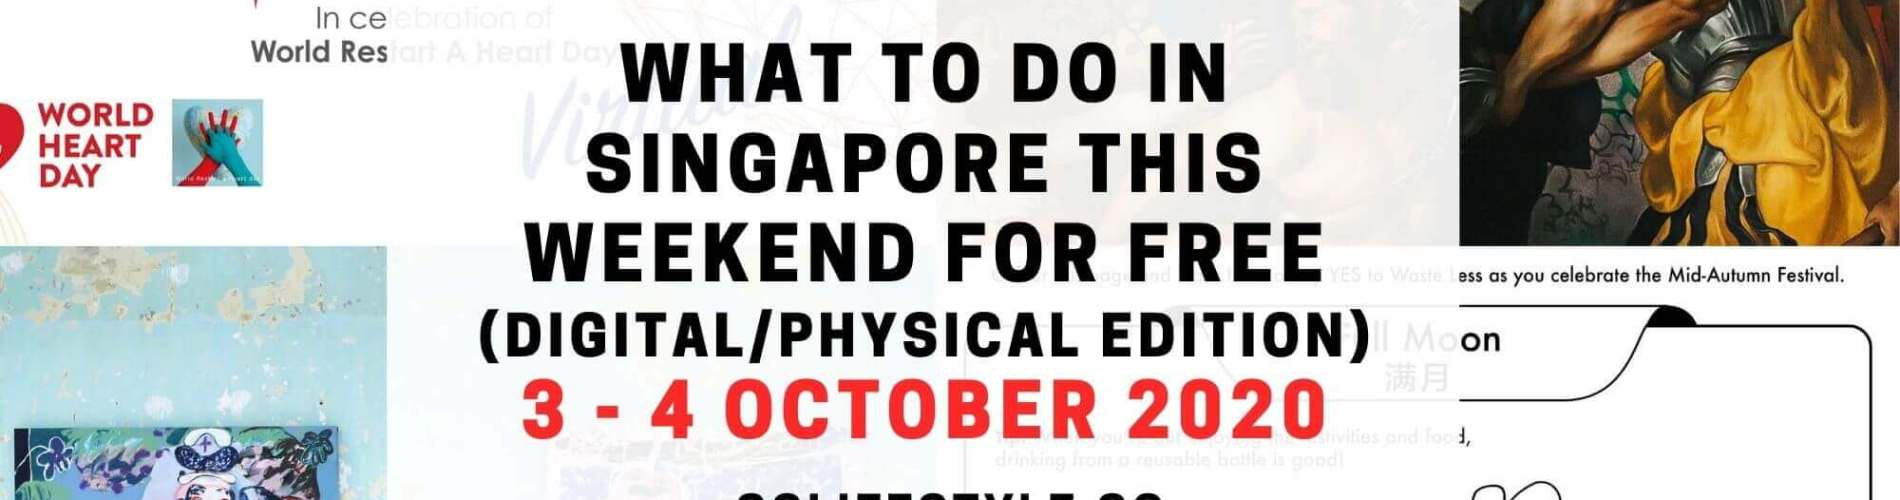 weekend what to do singapore october 2020